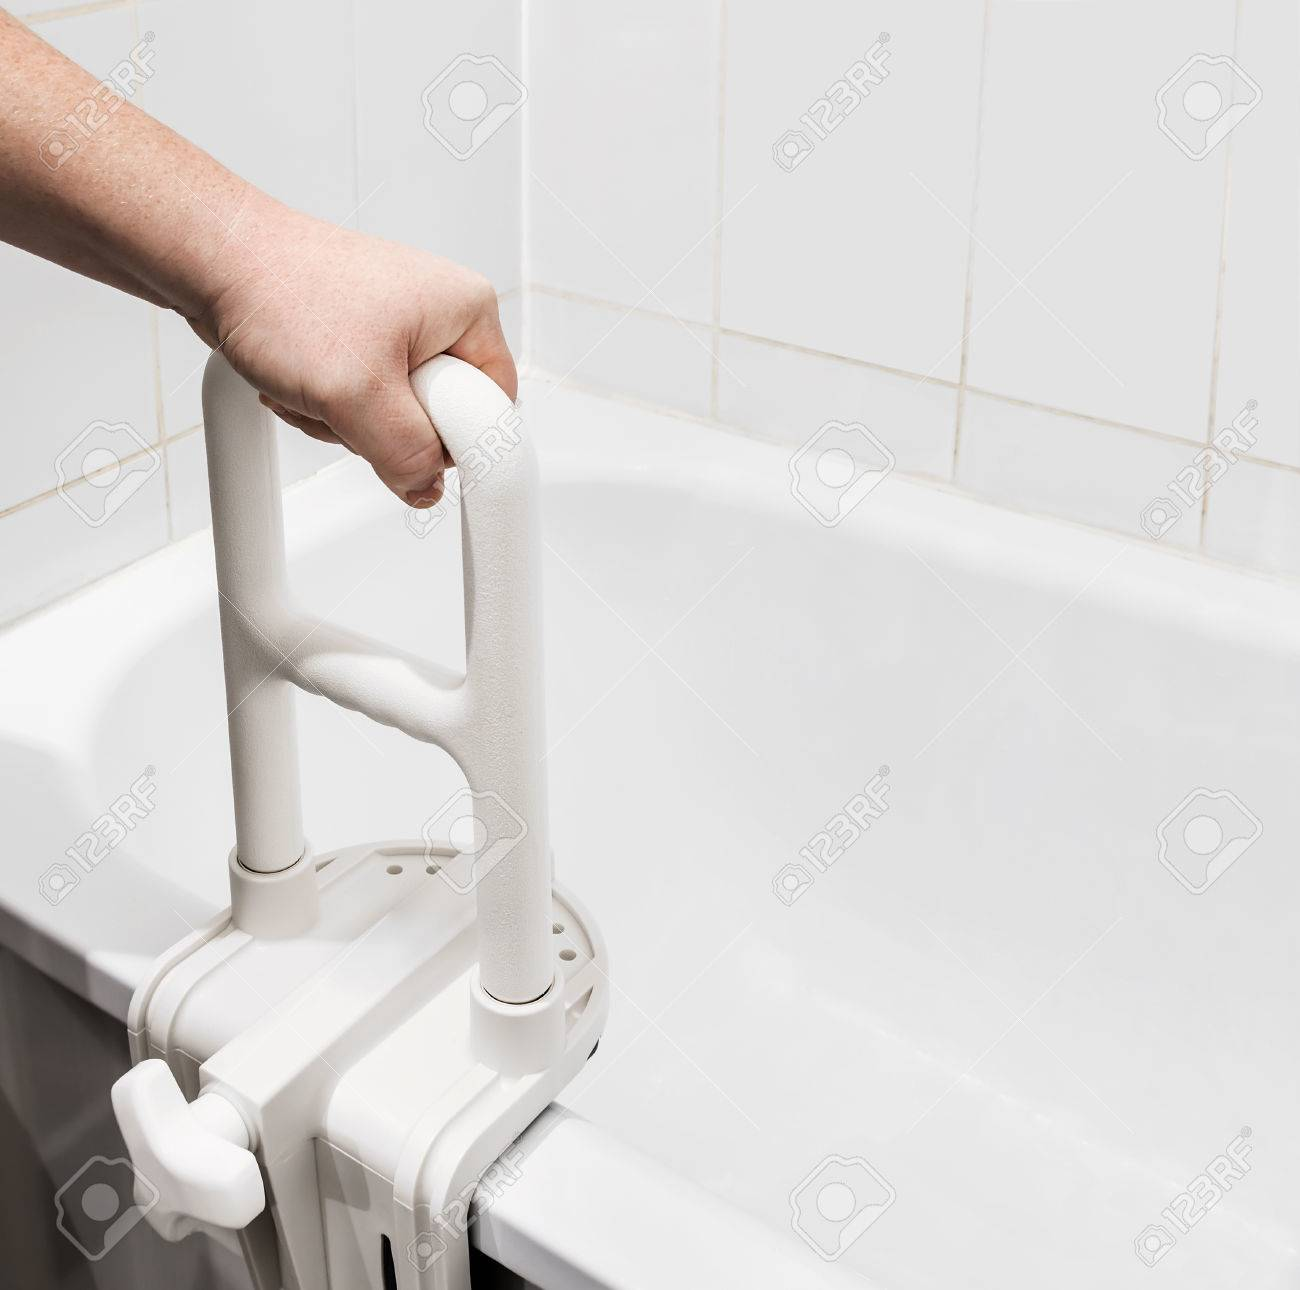 Hand Holding The Handrail In The Bathroom. Focus On The Handrail Stock  Photo   43166897